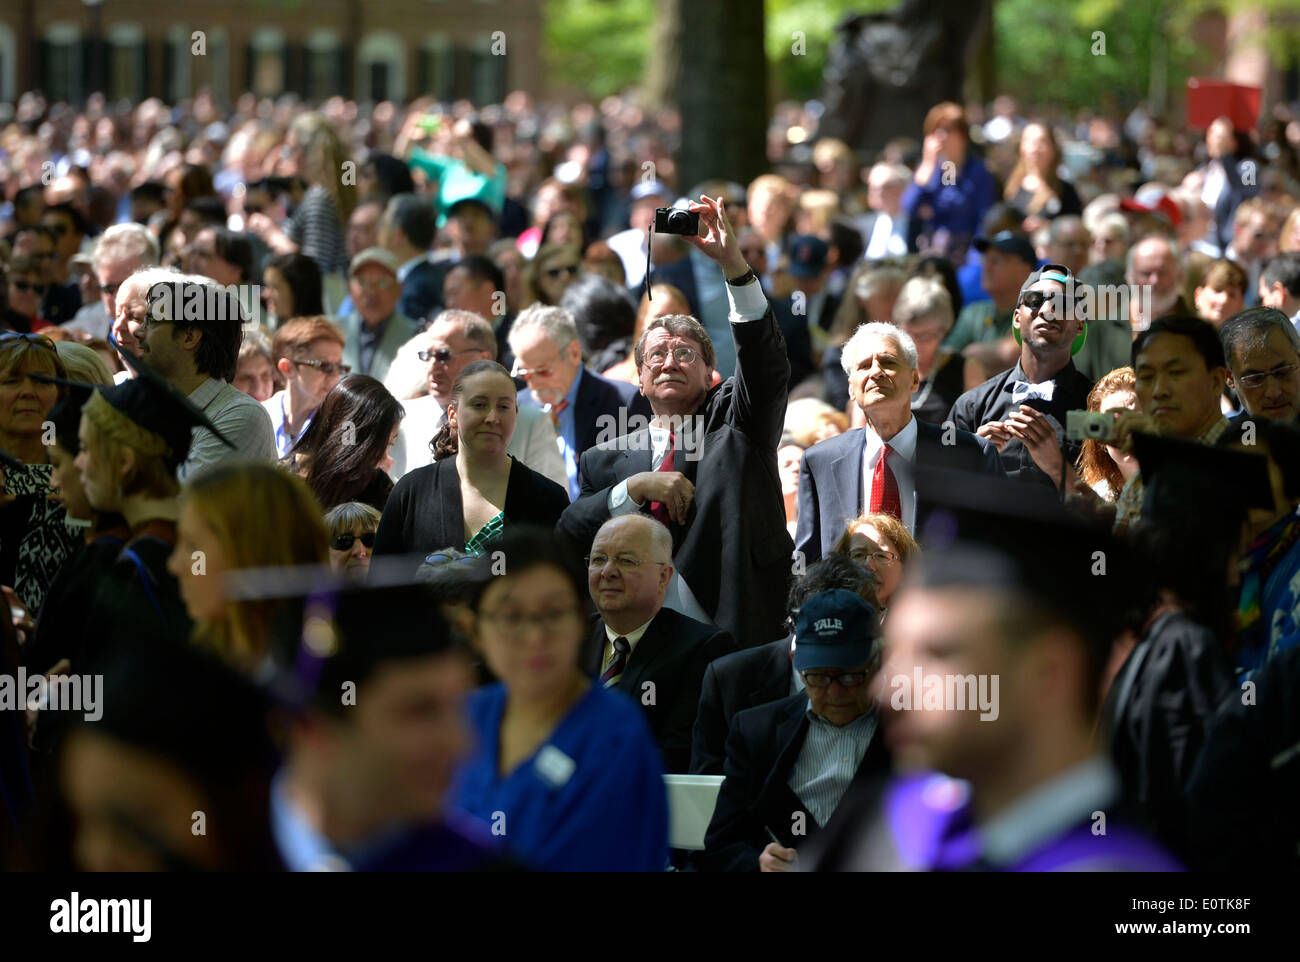 New Haven, USA. 19th May, 2014. Parents of Yale University students attend the 313th Commencement of Yale University at the Old Campus in New Haven, the United States, May 19, 2014. Twelve honorary doctorates and 3132 earned degrees were conferred on Monday during Yale's 313th Commencement ceremony, in addition to 253 provisional degrees for students who have yet to fully complete their study. Credit:  Wang Lei/Xinhua/Alamy Live News - Stock Image